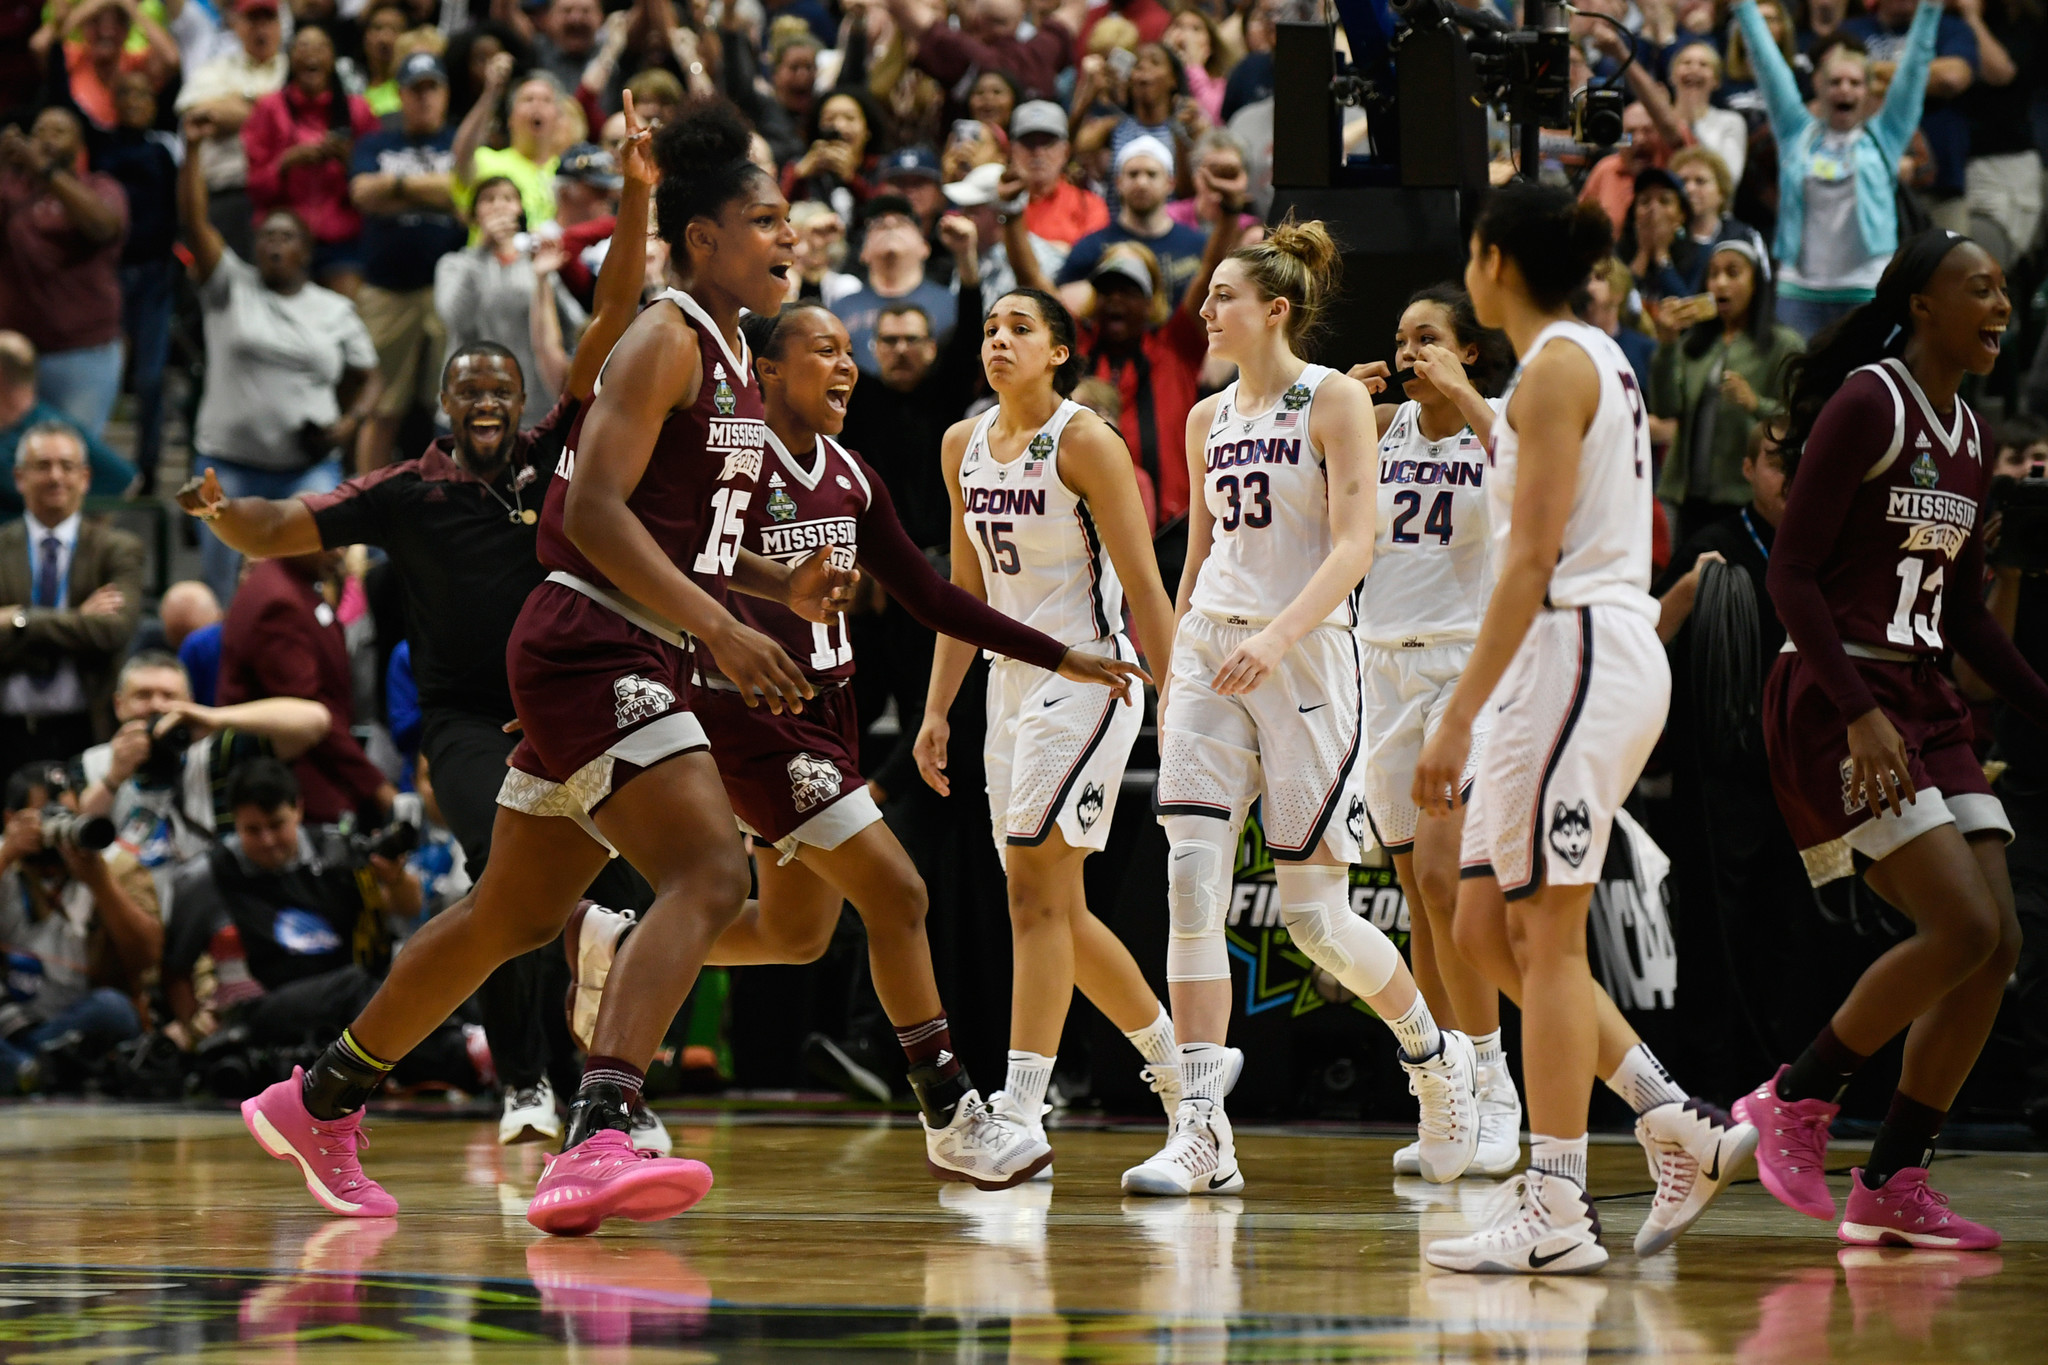 uconn basketball mississippi state womens streaking sports courant